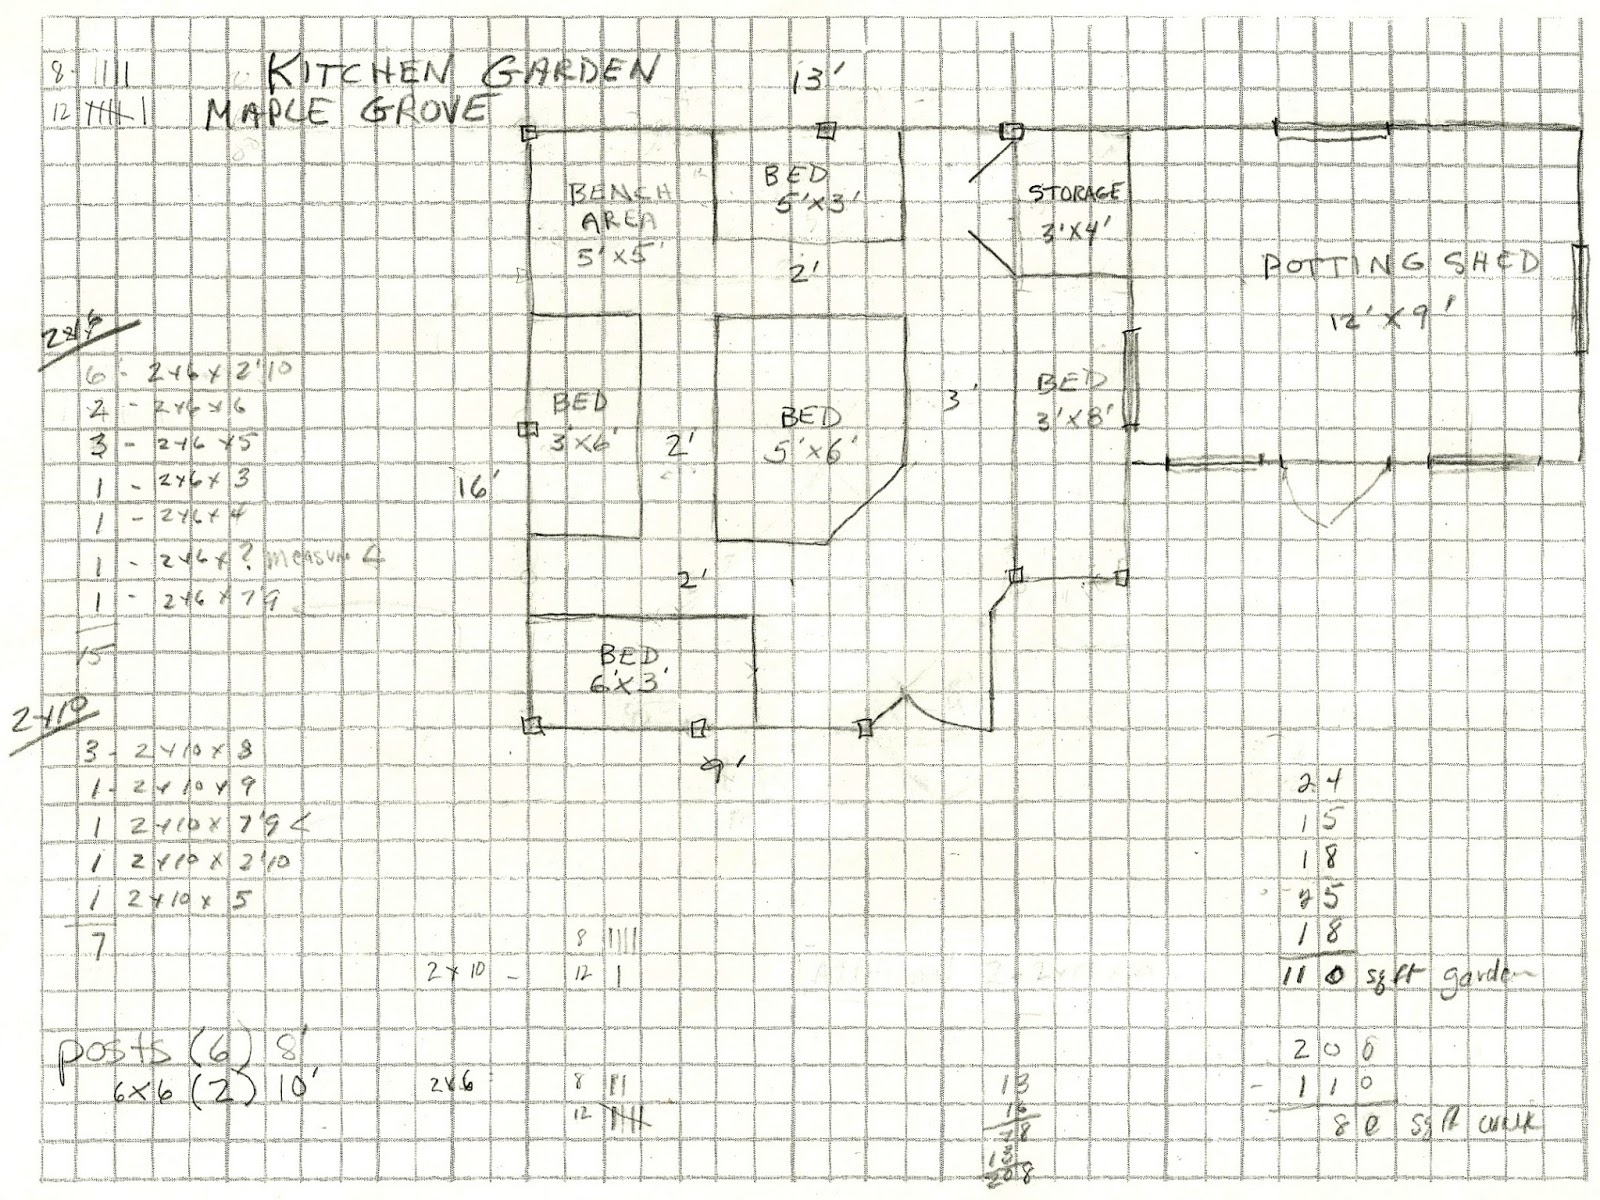 Layout Of Kitchen Garden Maple Grove Square Foot And Vertical Gardening